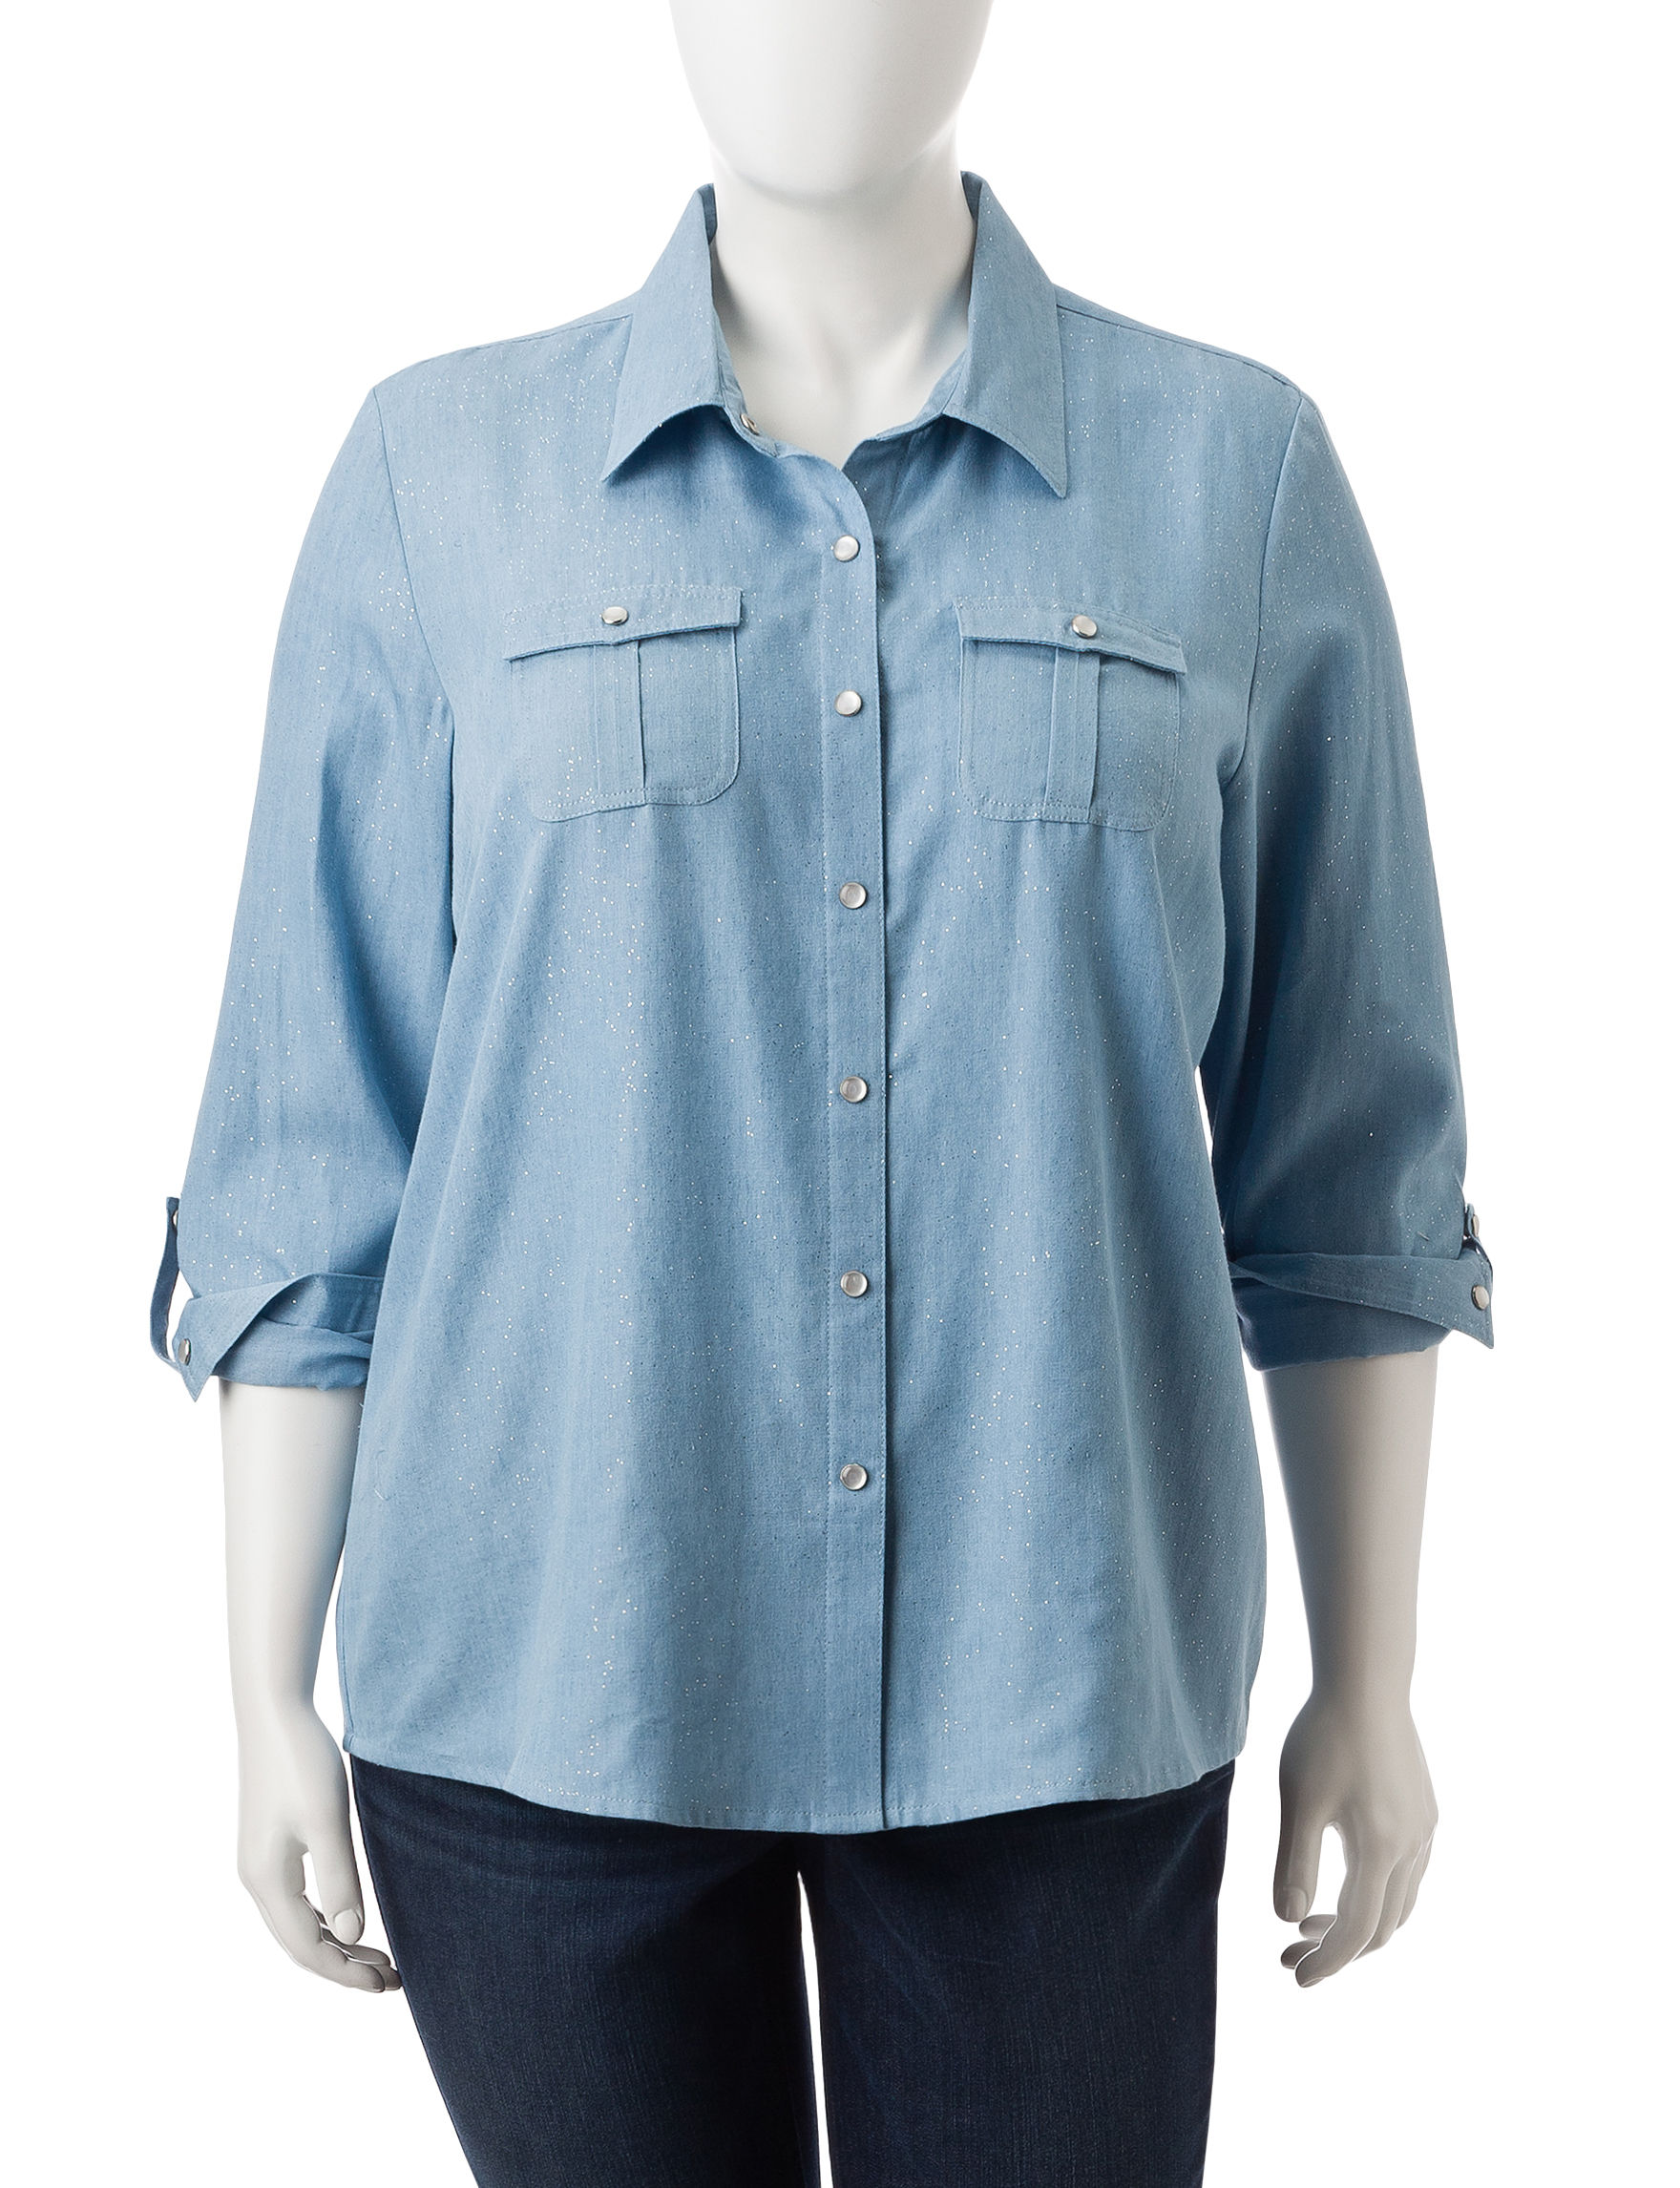 Cathy Daniels Chambray Shirts & Blouses